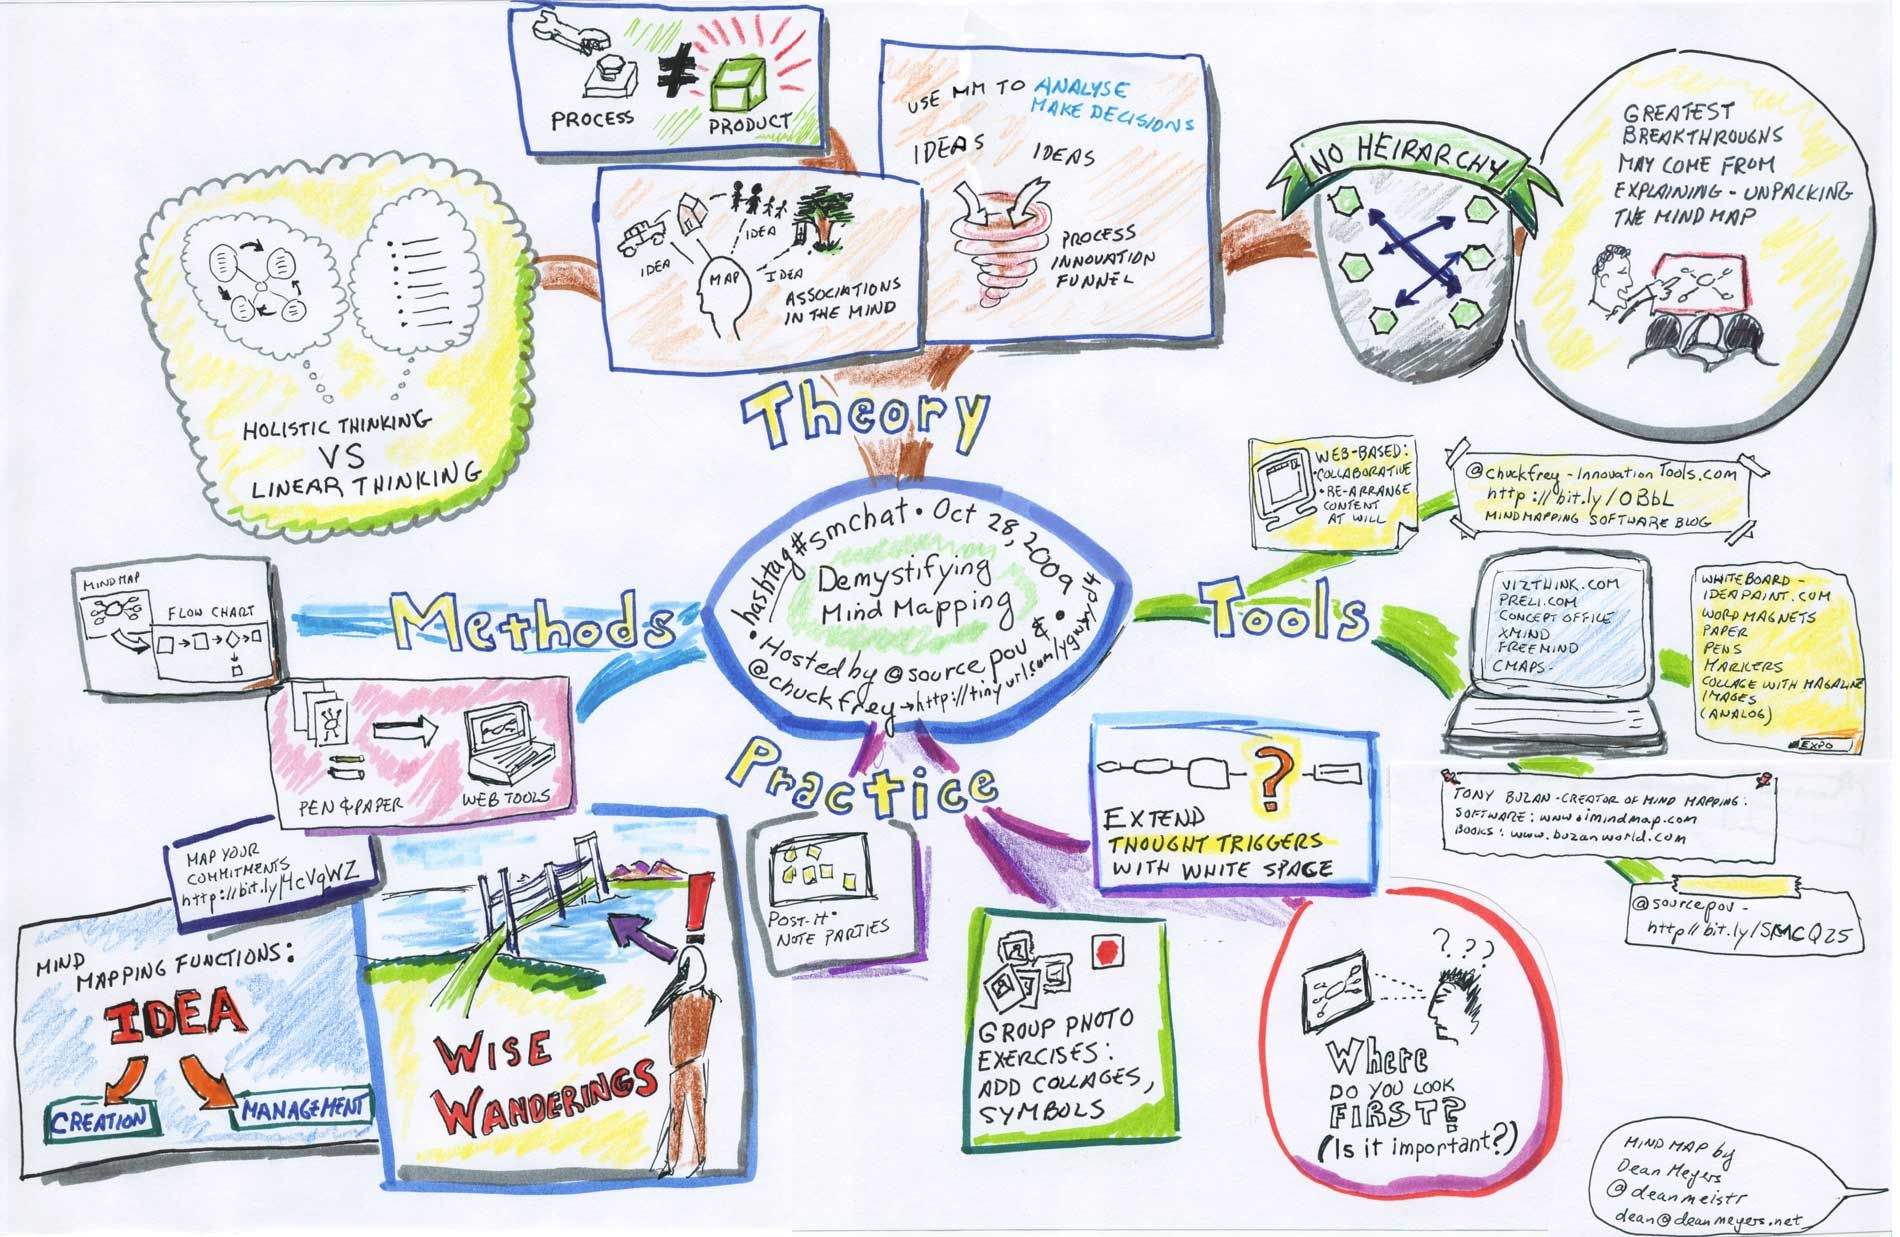 A Mind Map about... Mindmapping. HT to Dean Meister (The 2 dimensions of mindmapping suggest an N-dimensional idea space, particularly in contrast to a 1-dimensional and hierarchical [1 direction] list.)